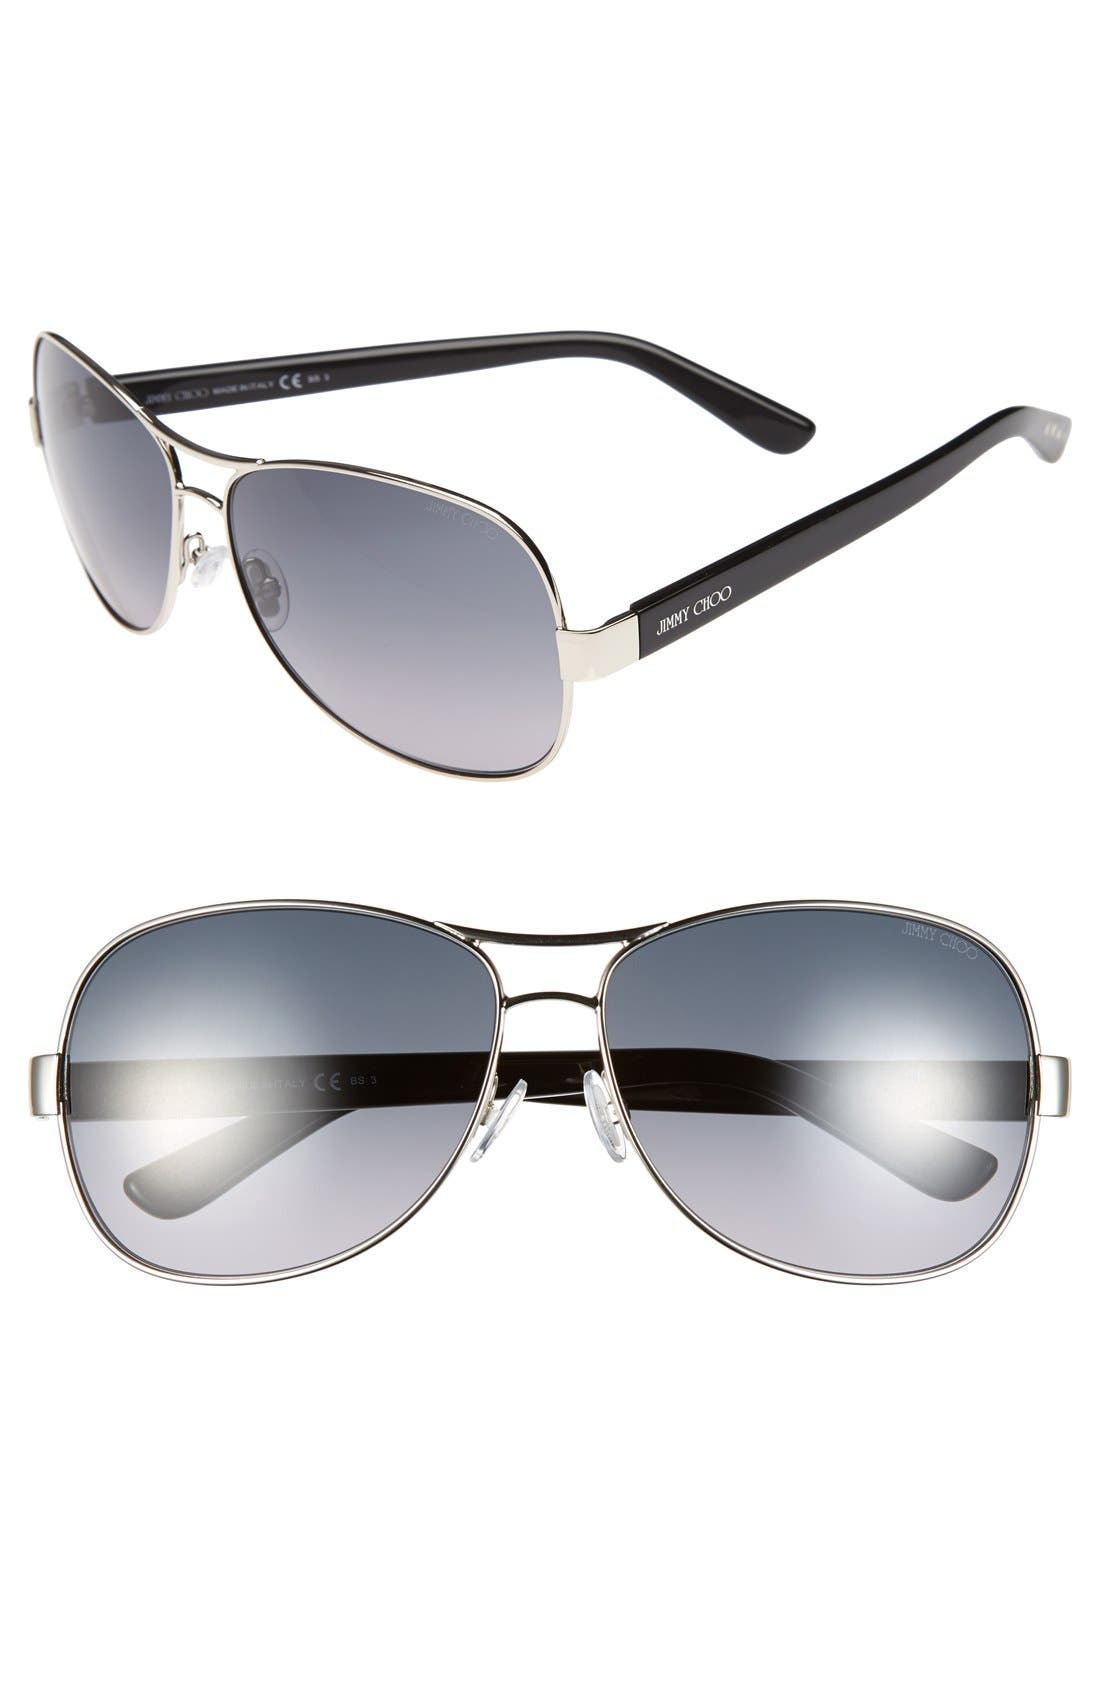 Main Image - Jimmy Choo 'Bexs' 60mm Sunglasses (Online Only)